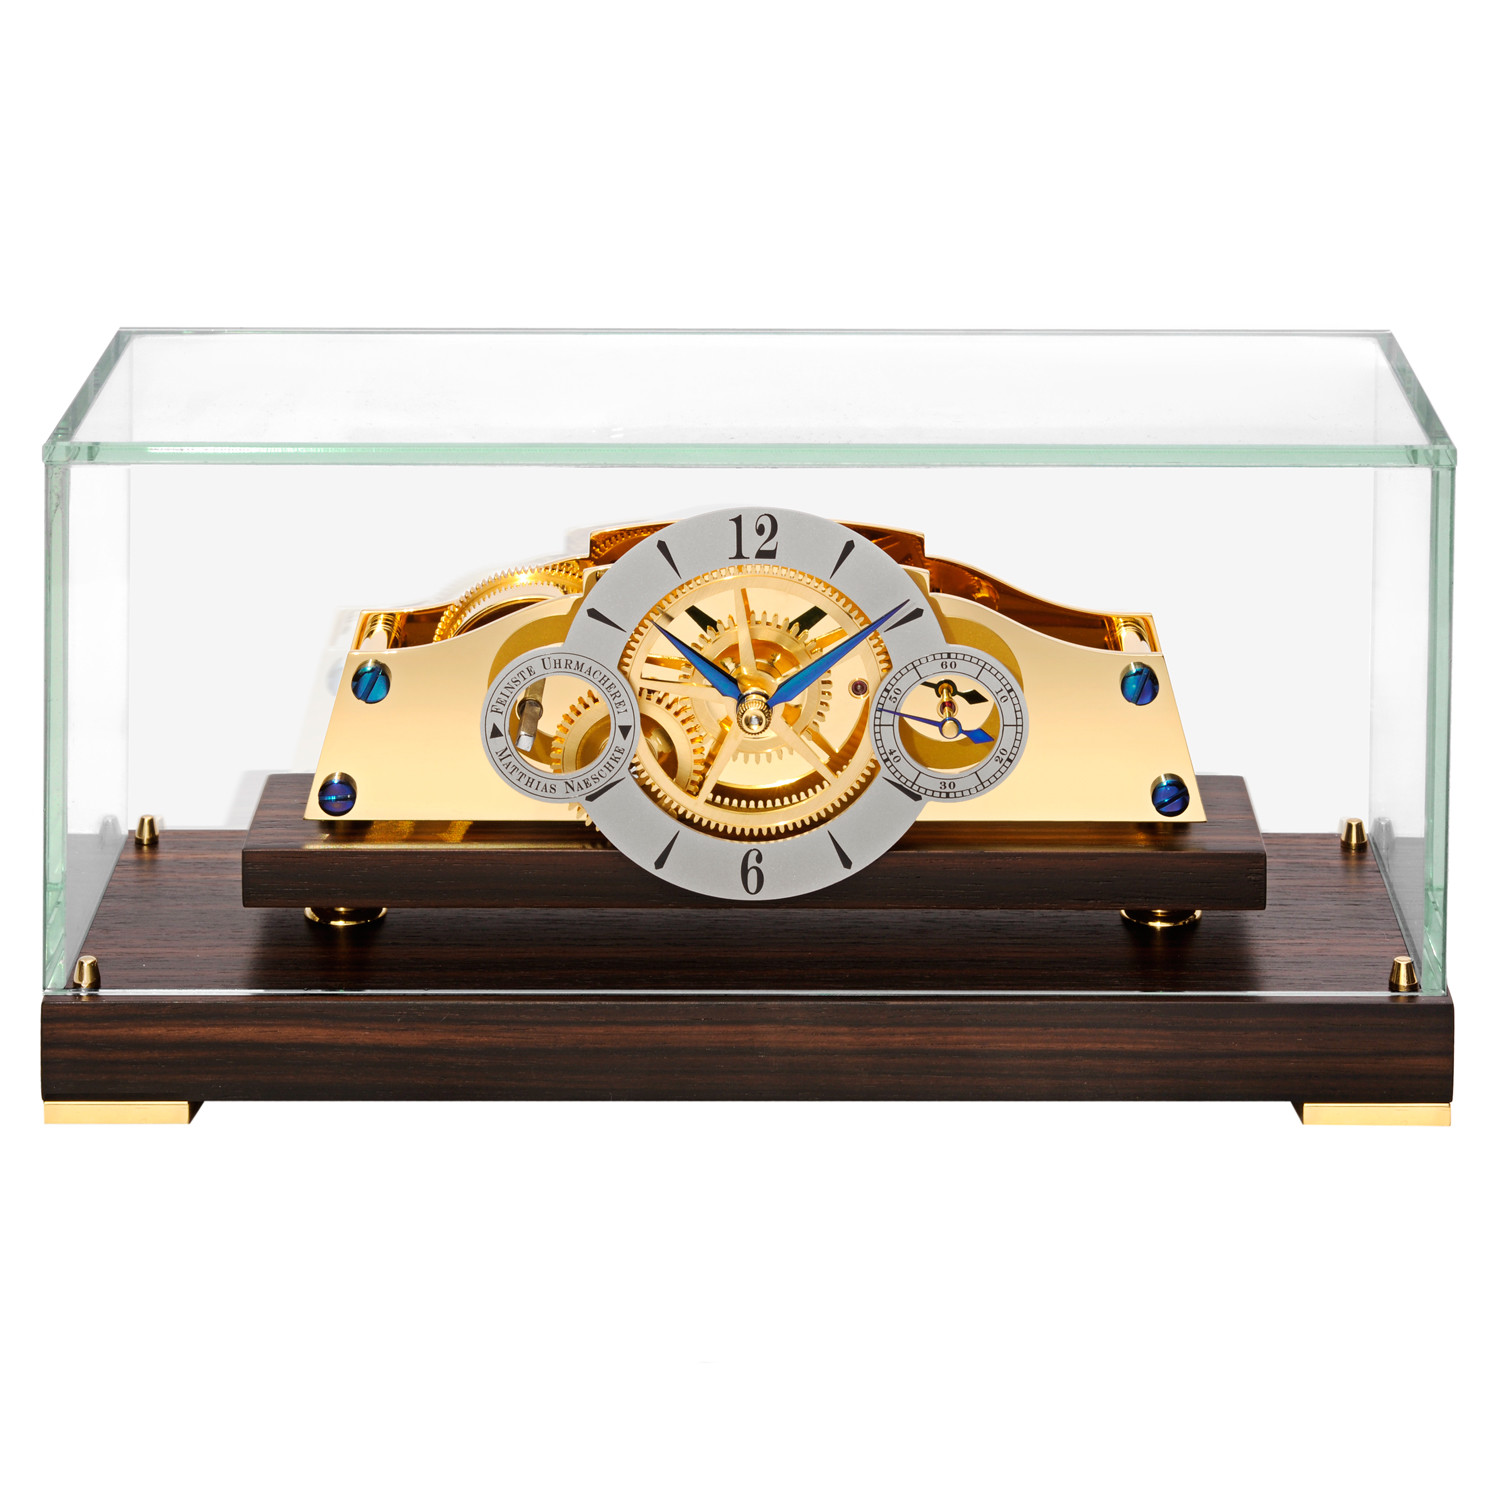 Matthias Naeschke La Mignone Desk Clock Featuring A Mechanical Manual Winding Movement With 14 Day Power Reserve Composed Of Gold Plated